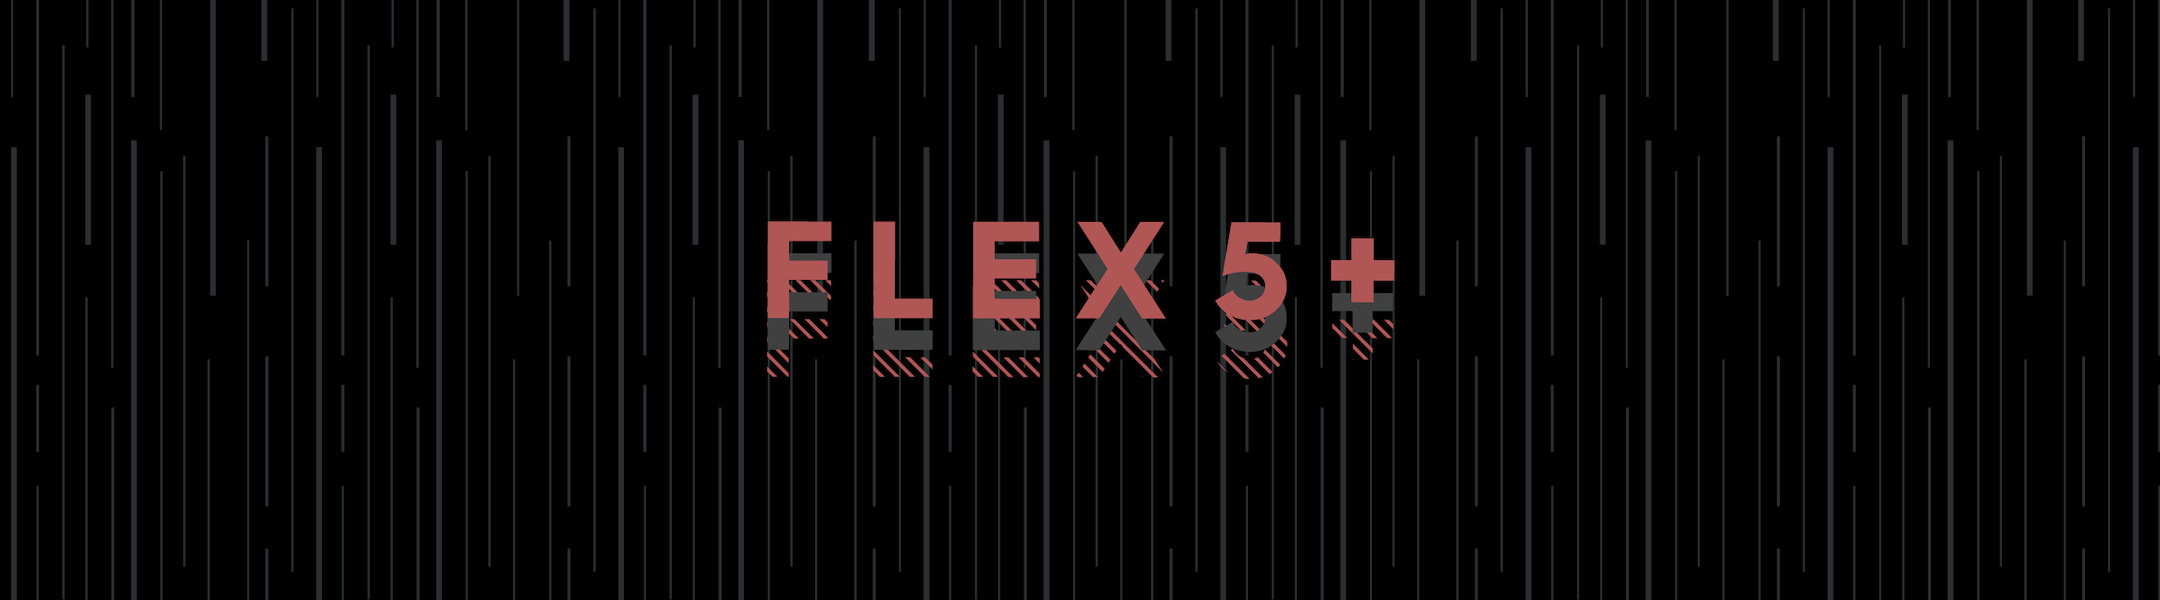 Flex 5 + Pass Image